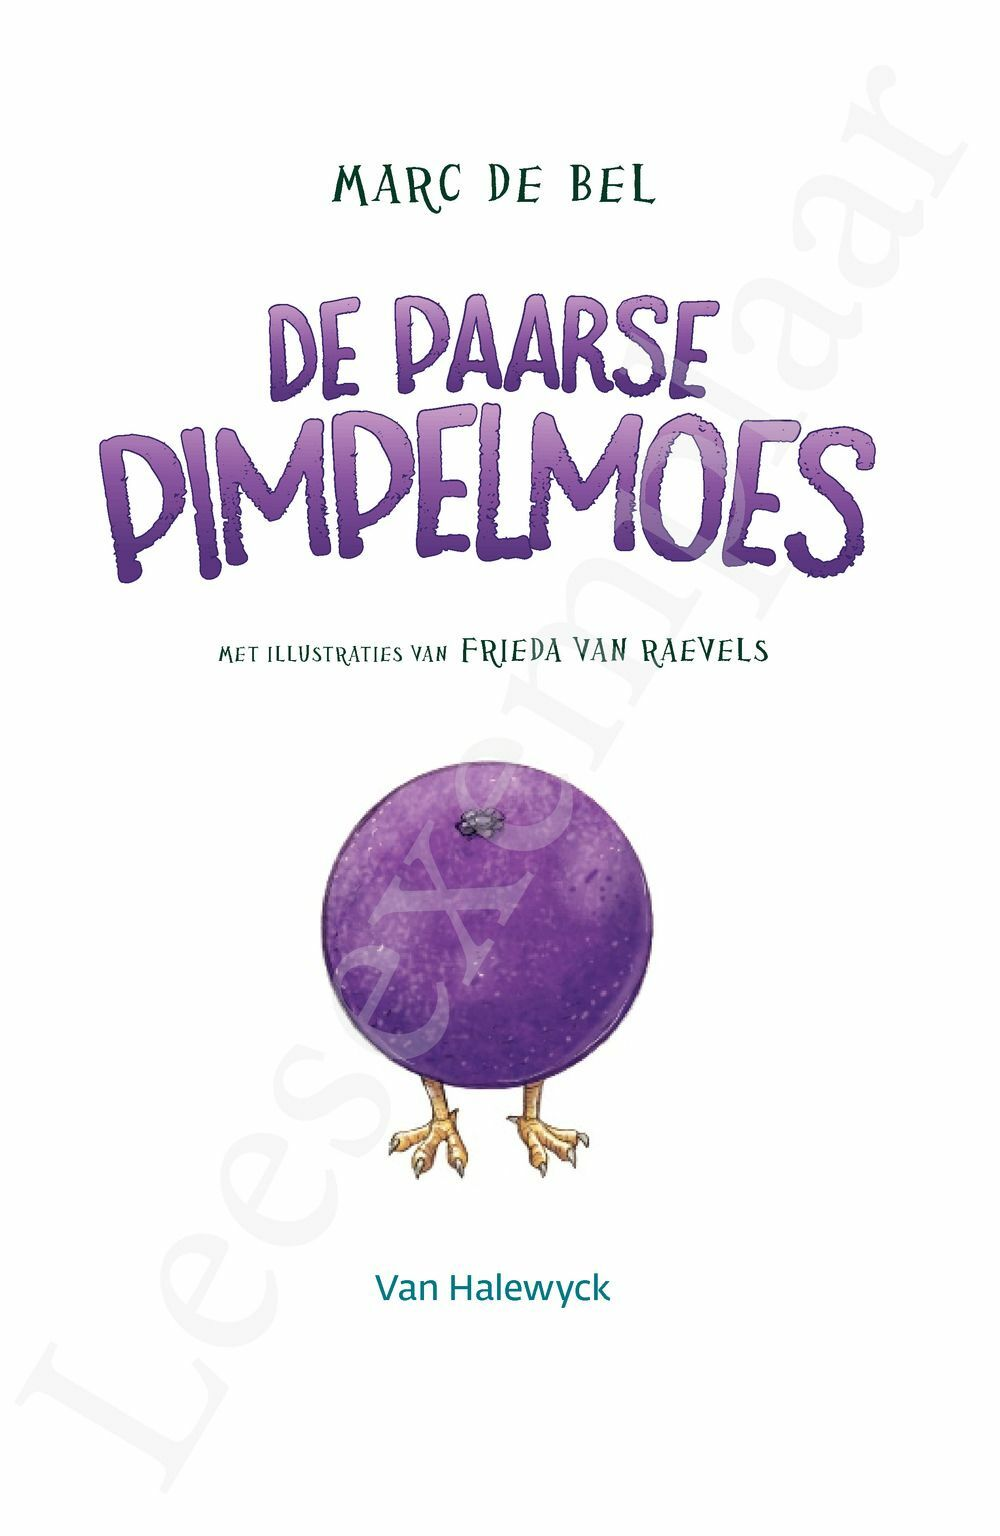 Preview: De paarse pimpelmoes